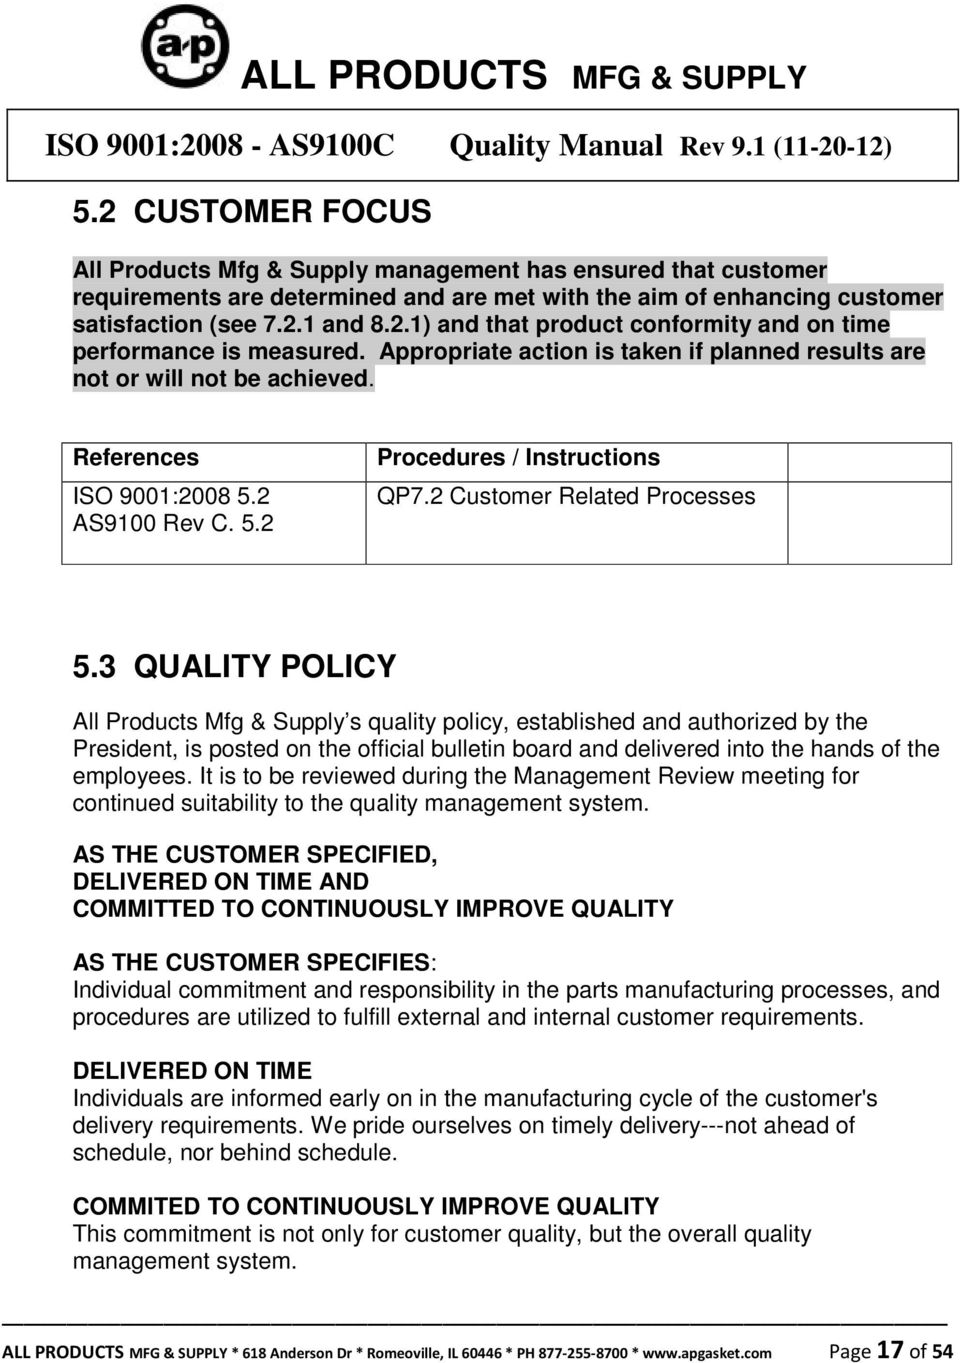 3 QUALITY POLICY All Products Mfg & Supply s quality policy, established and authorized by the President, is posted on the official bulletin board and delivered into the hands of the employees.